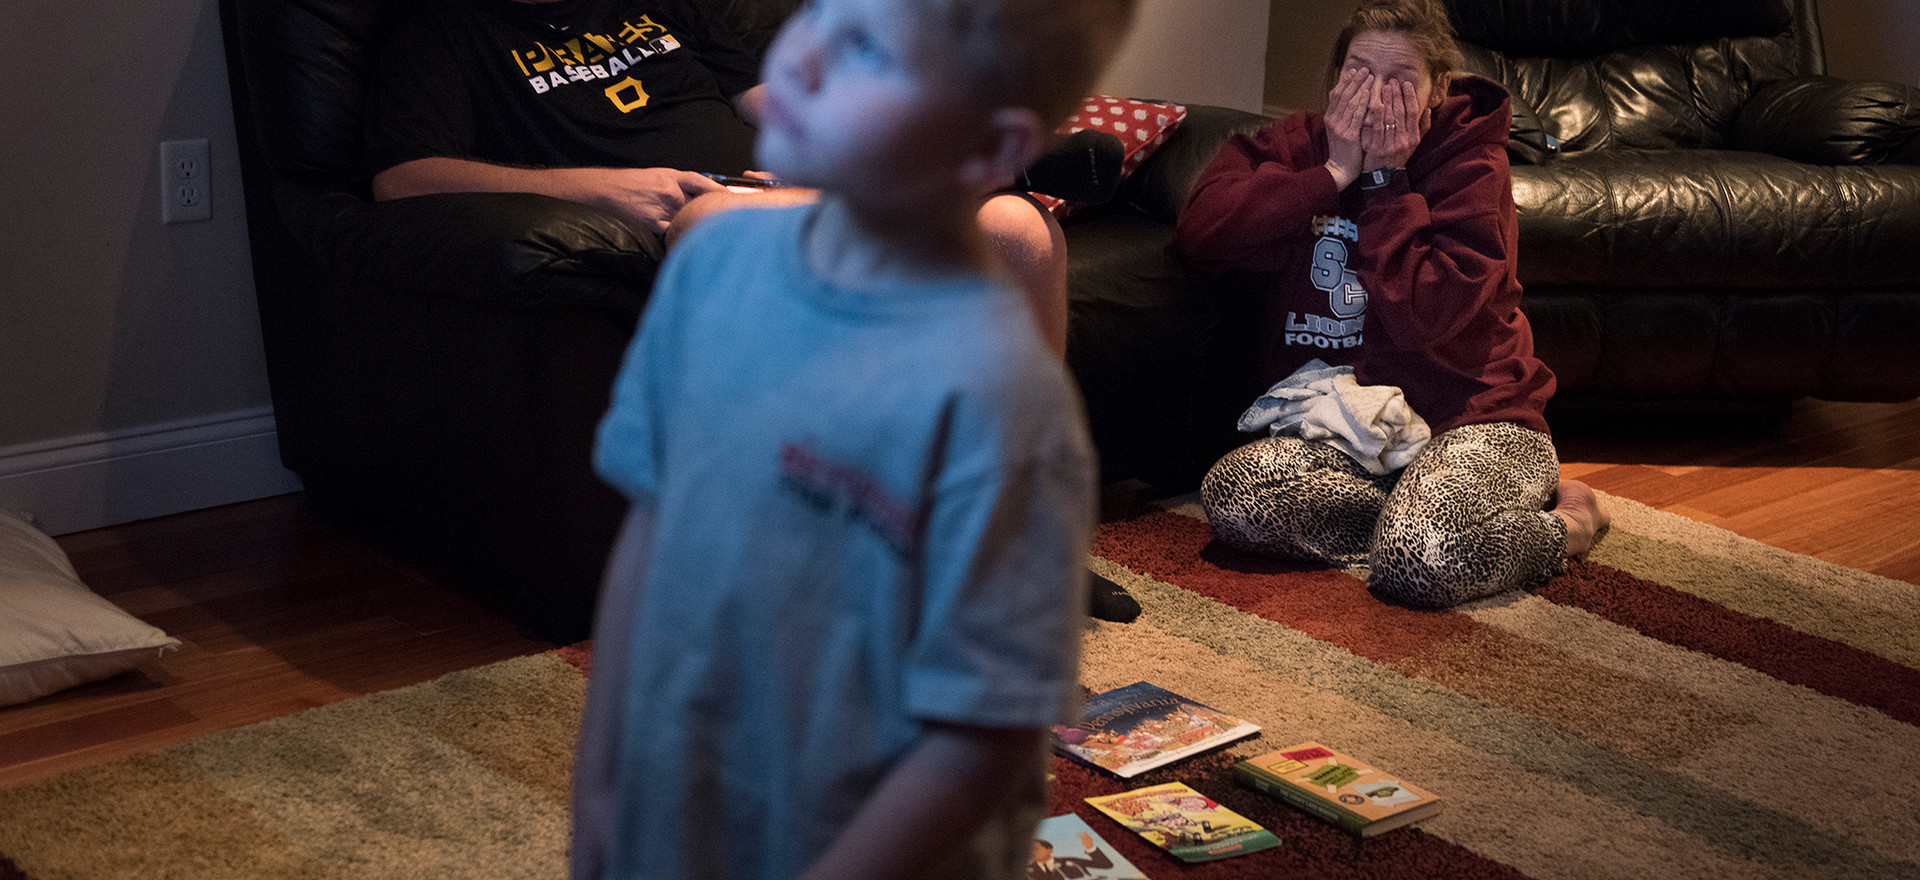 Jamie rubs her eyes as she waits for her husband, Brian, to finish playing video games with their son, Layton, so he can squeeze her head to ease the pain of her headache. In the evenings, Jamie's headaches worsen to the point that her eyes water so she uses an ice pack and pressure for relief.